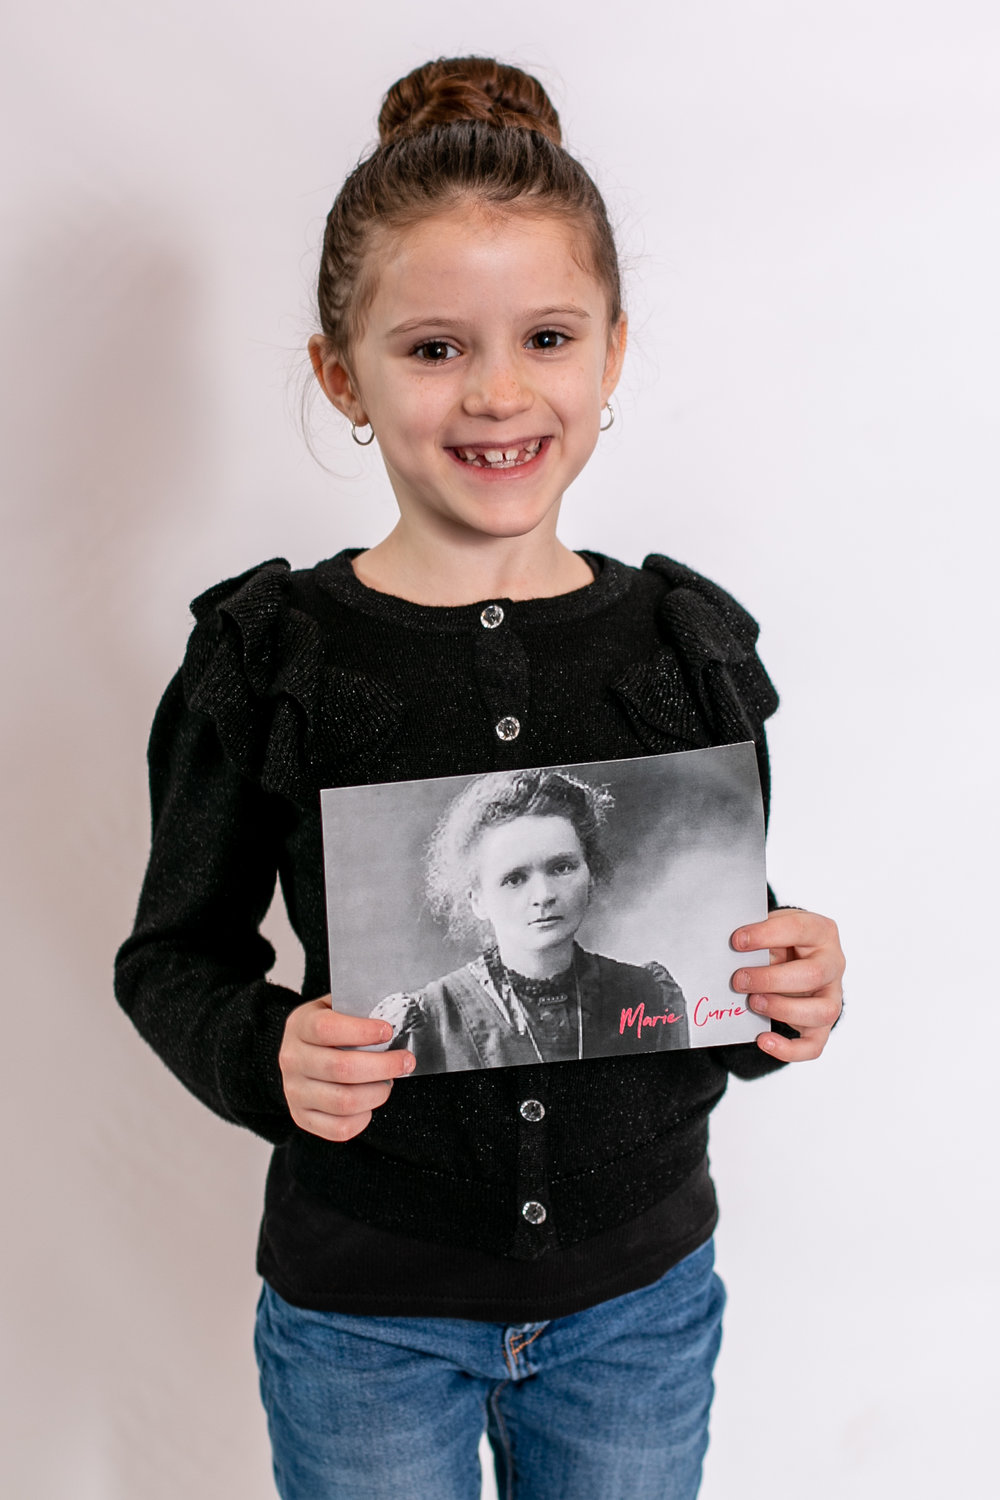 Say yes to Jess photographs Little girl dresses as Marie Curie for International Womens Day